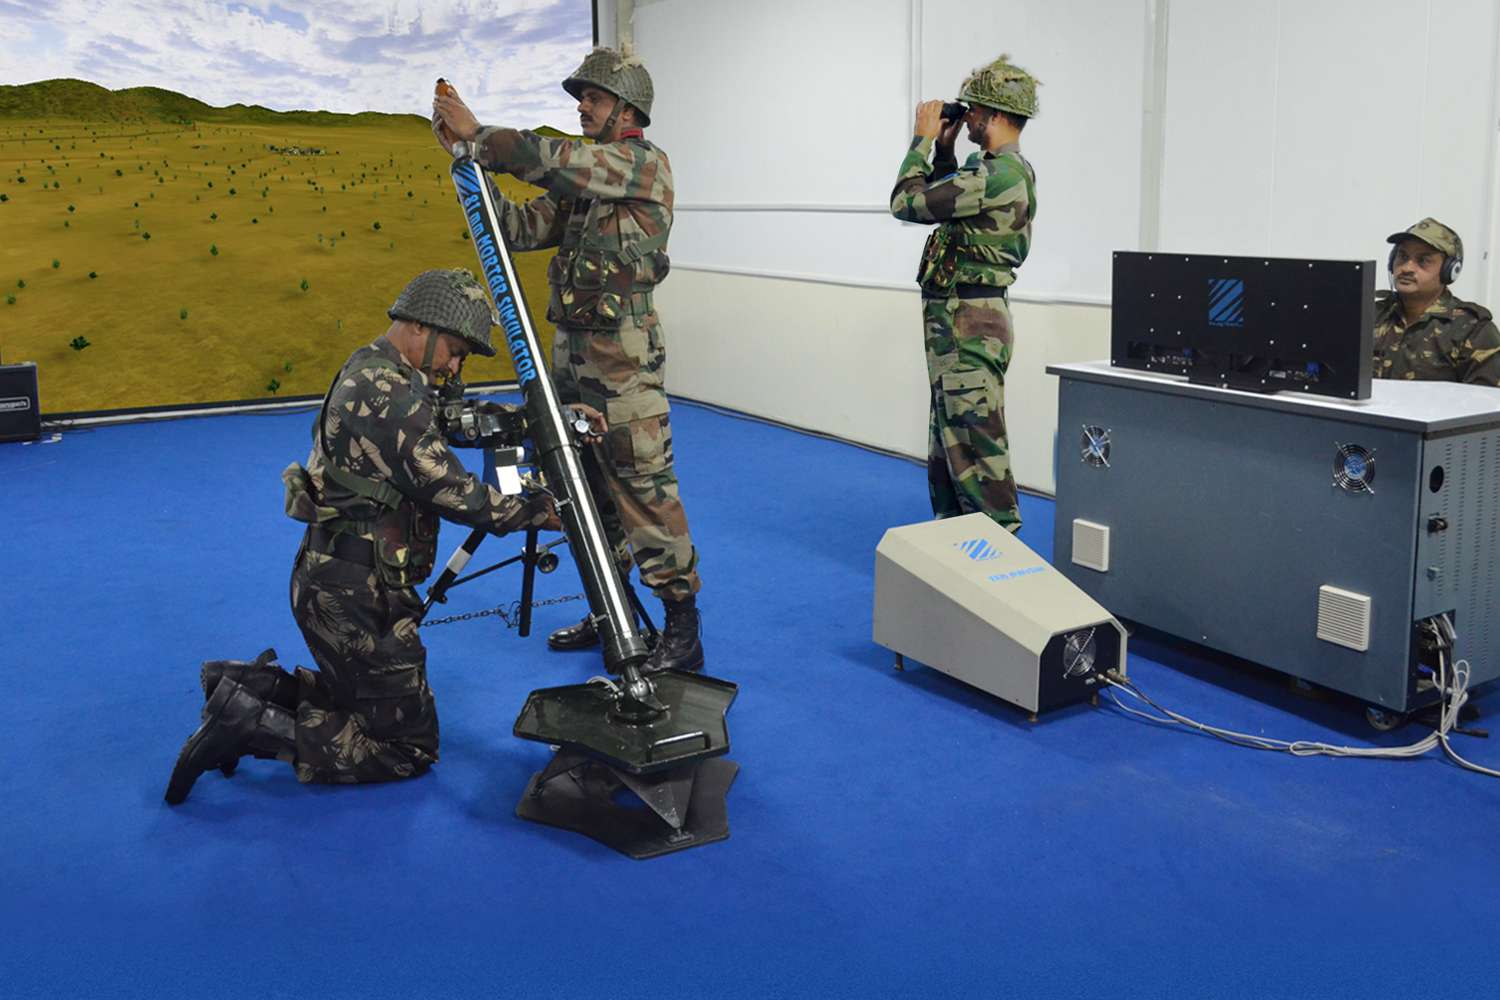 81mm Mortar Integrated Training Simulator (81mm MIS)